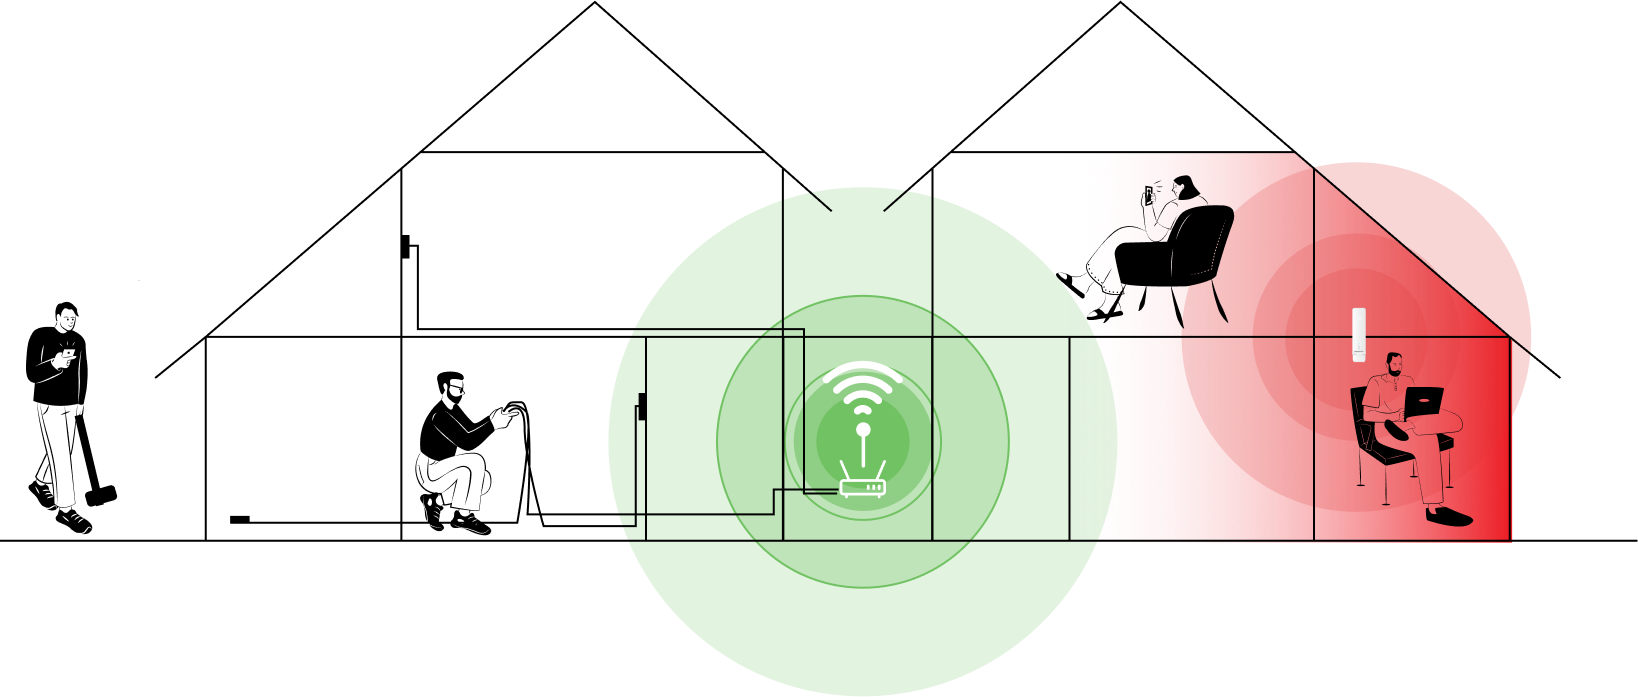 Existing wifi problems